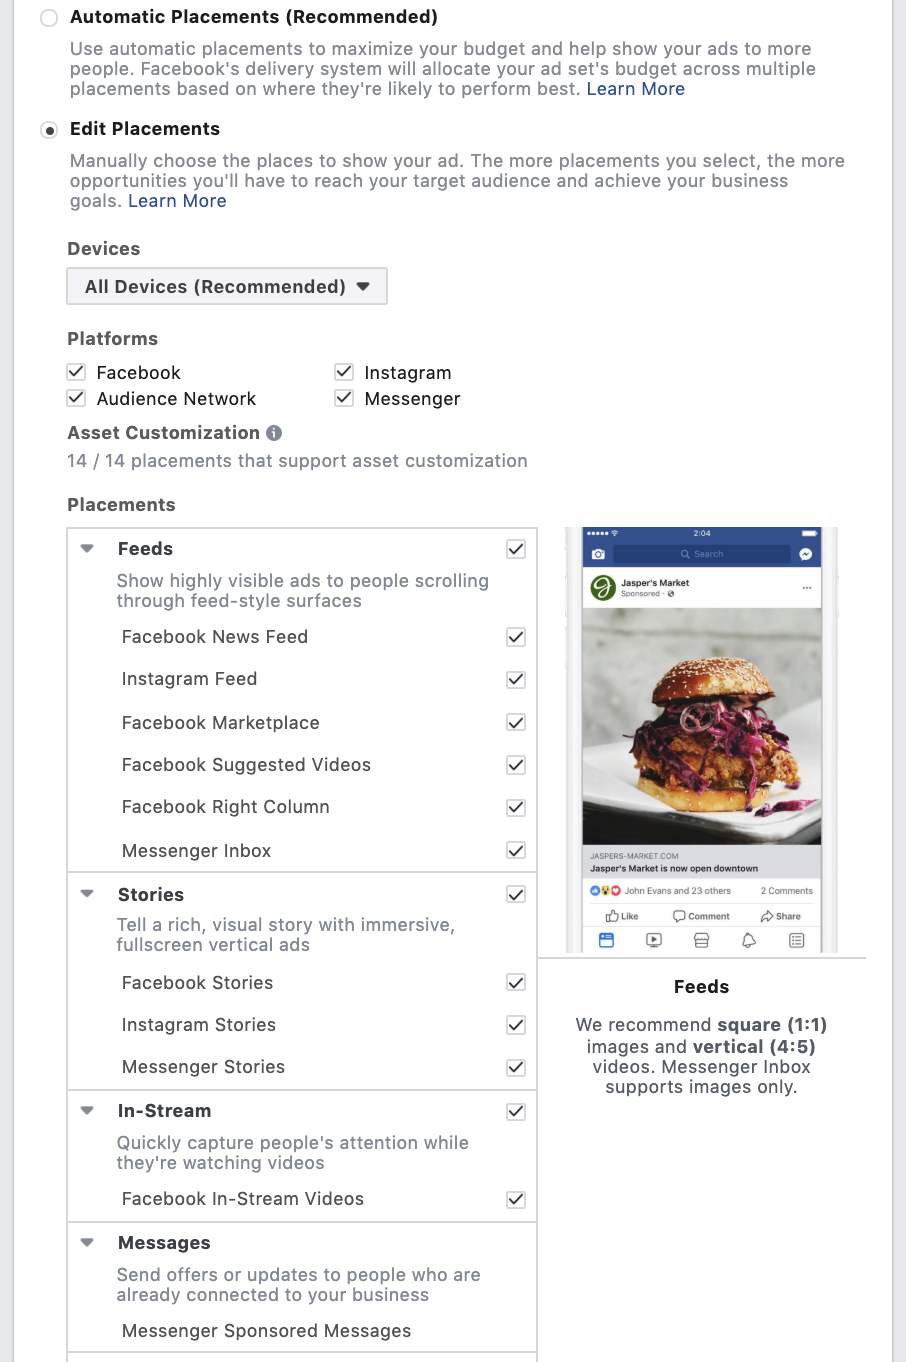 Facebook Ad - Devices & Placements